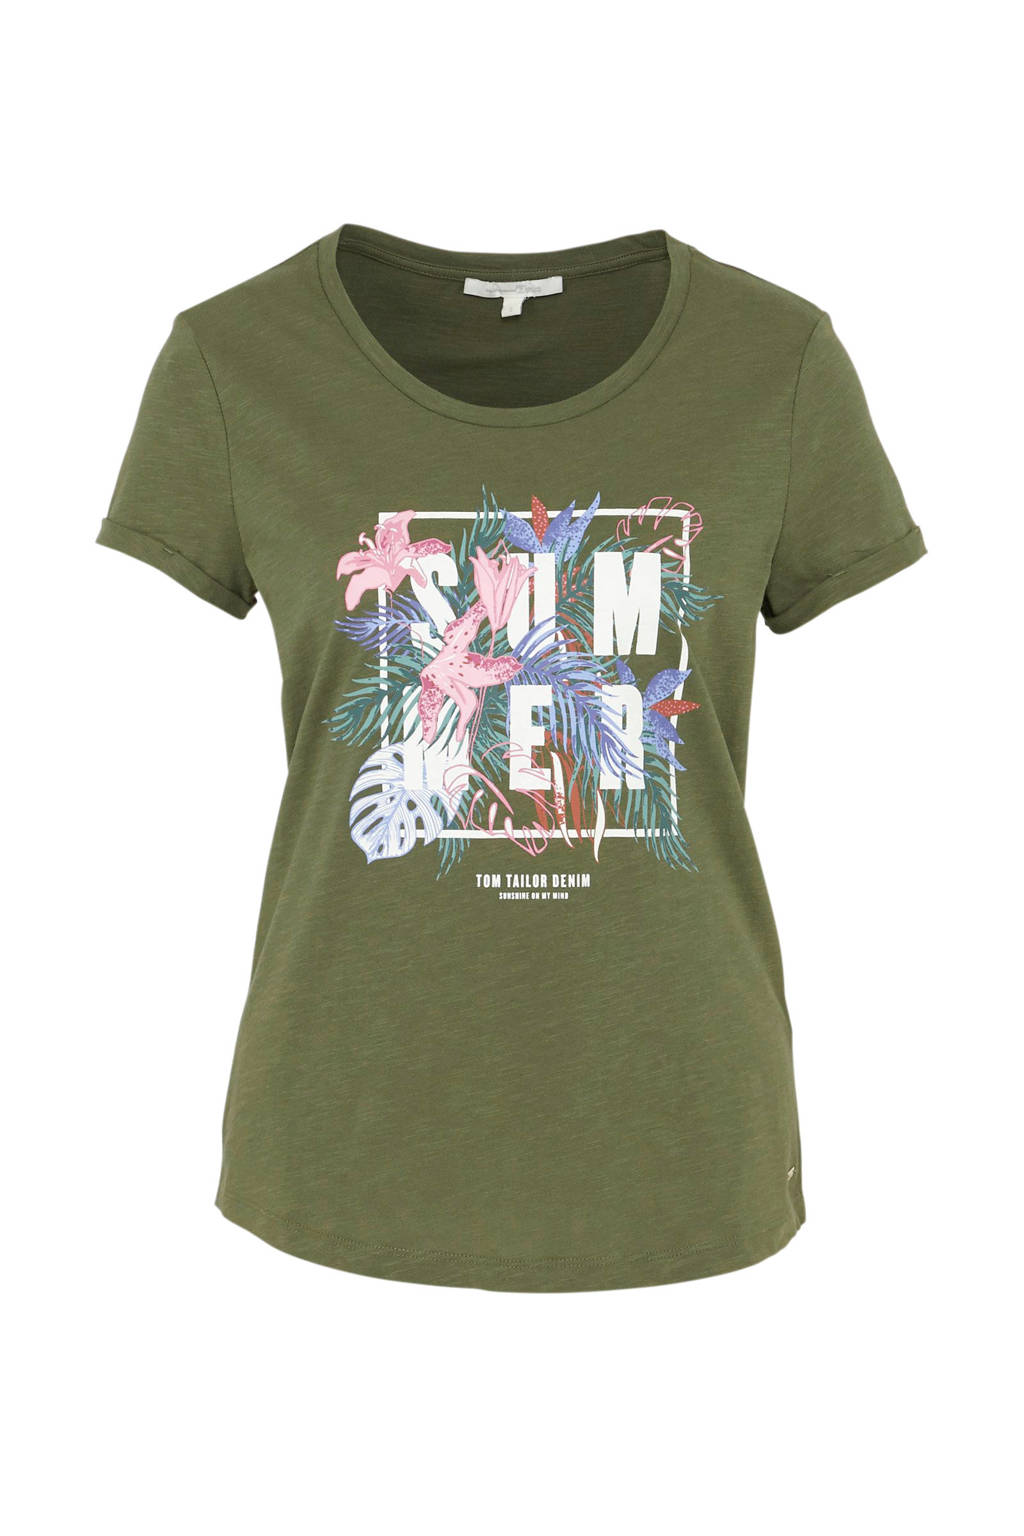 Tom Tailor T-shirt met printopdruk groen multi